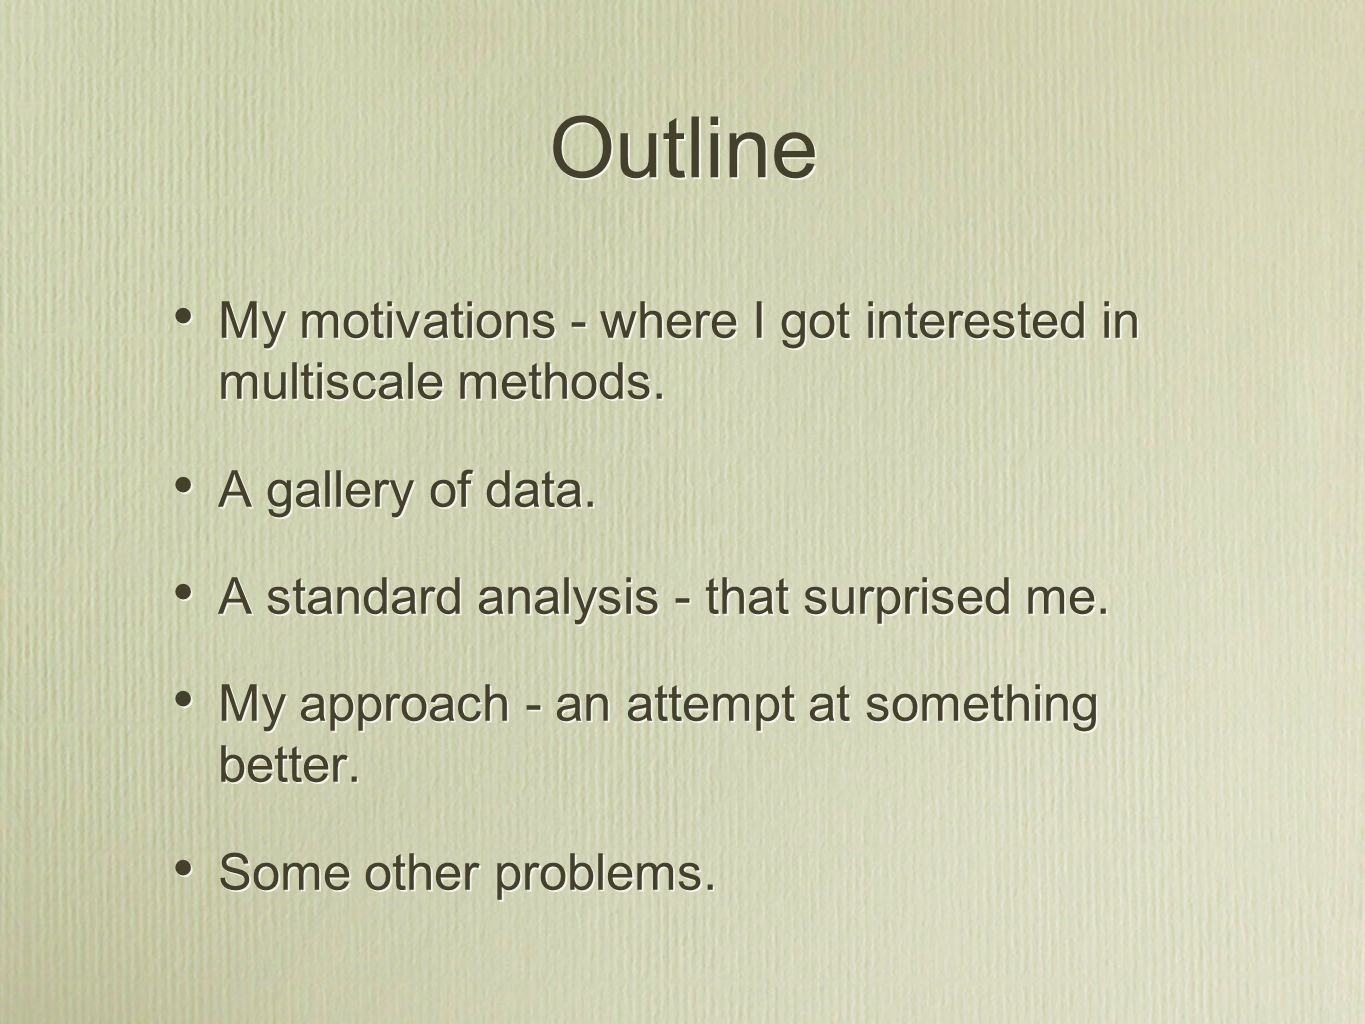 Outline My motivations - where I got interested in multiscale methods.